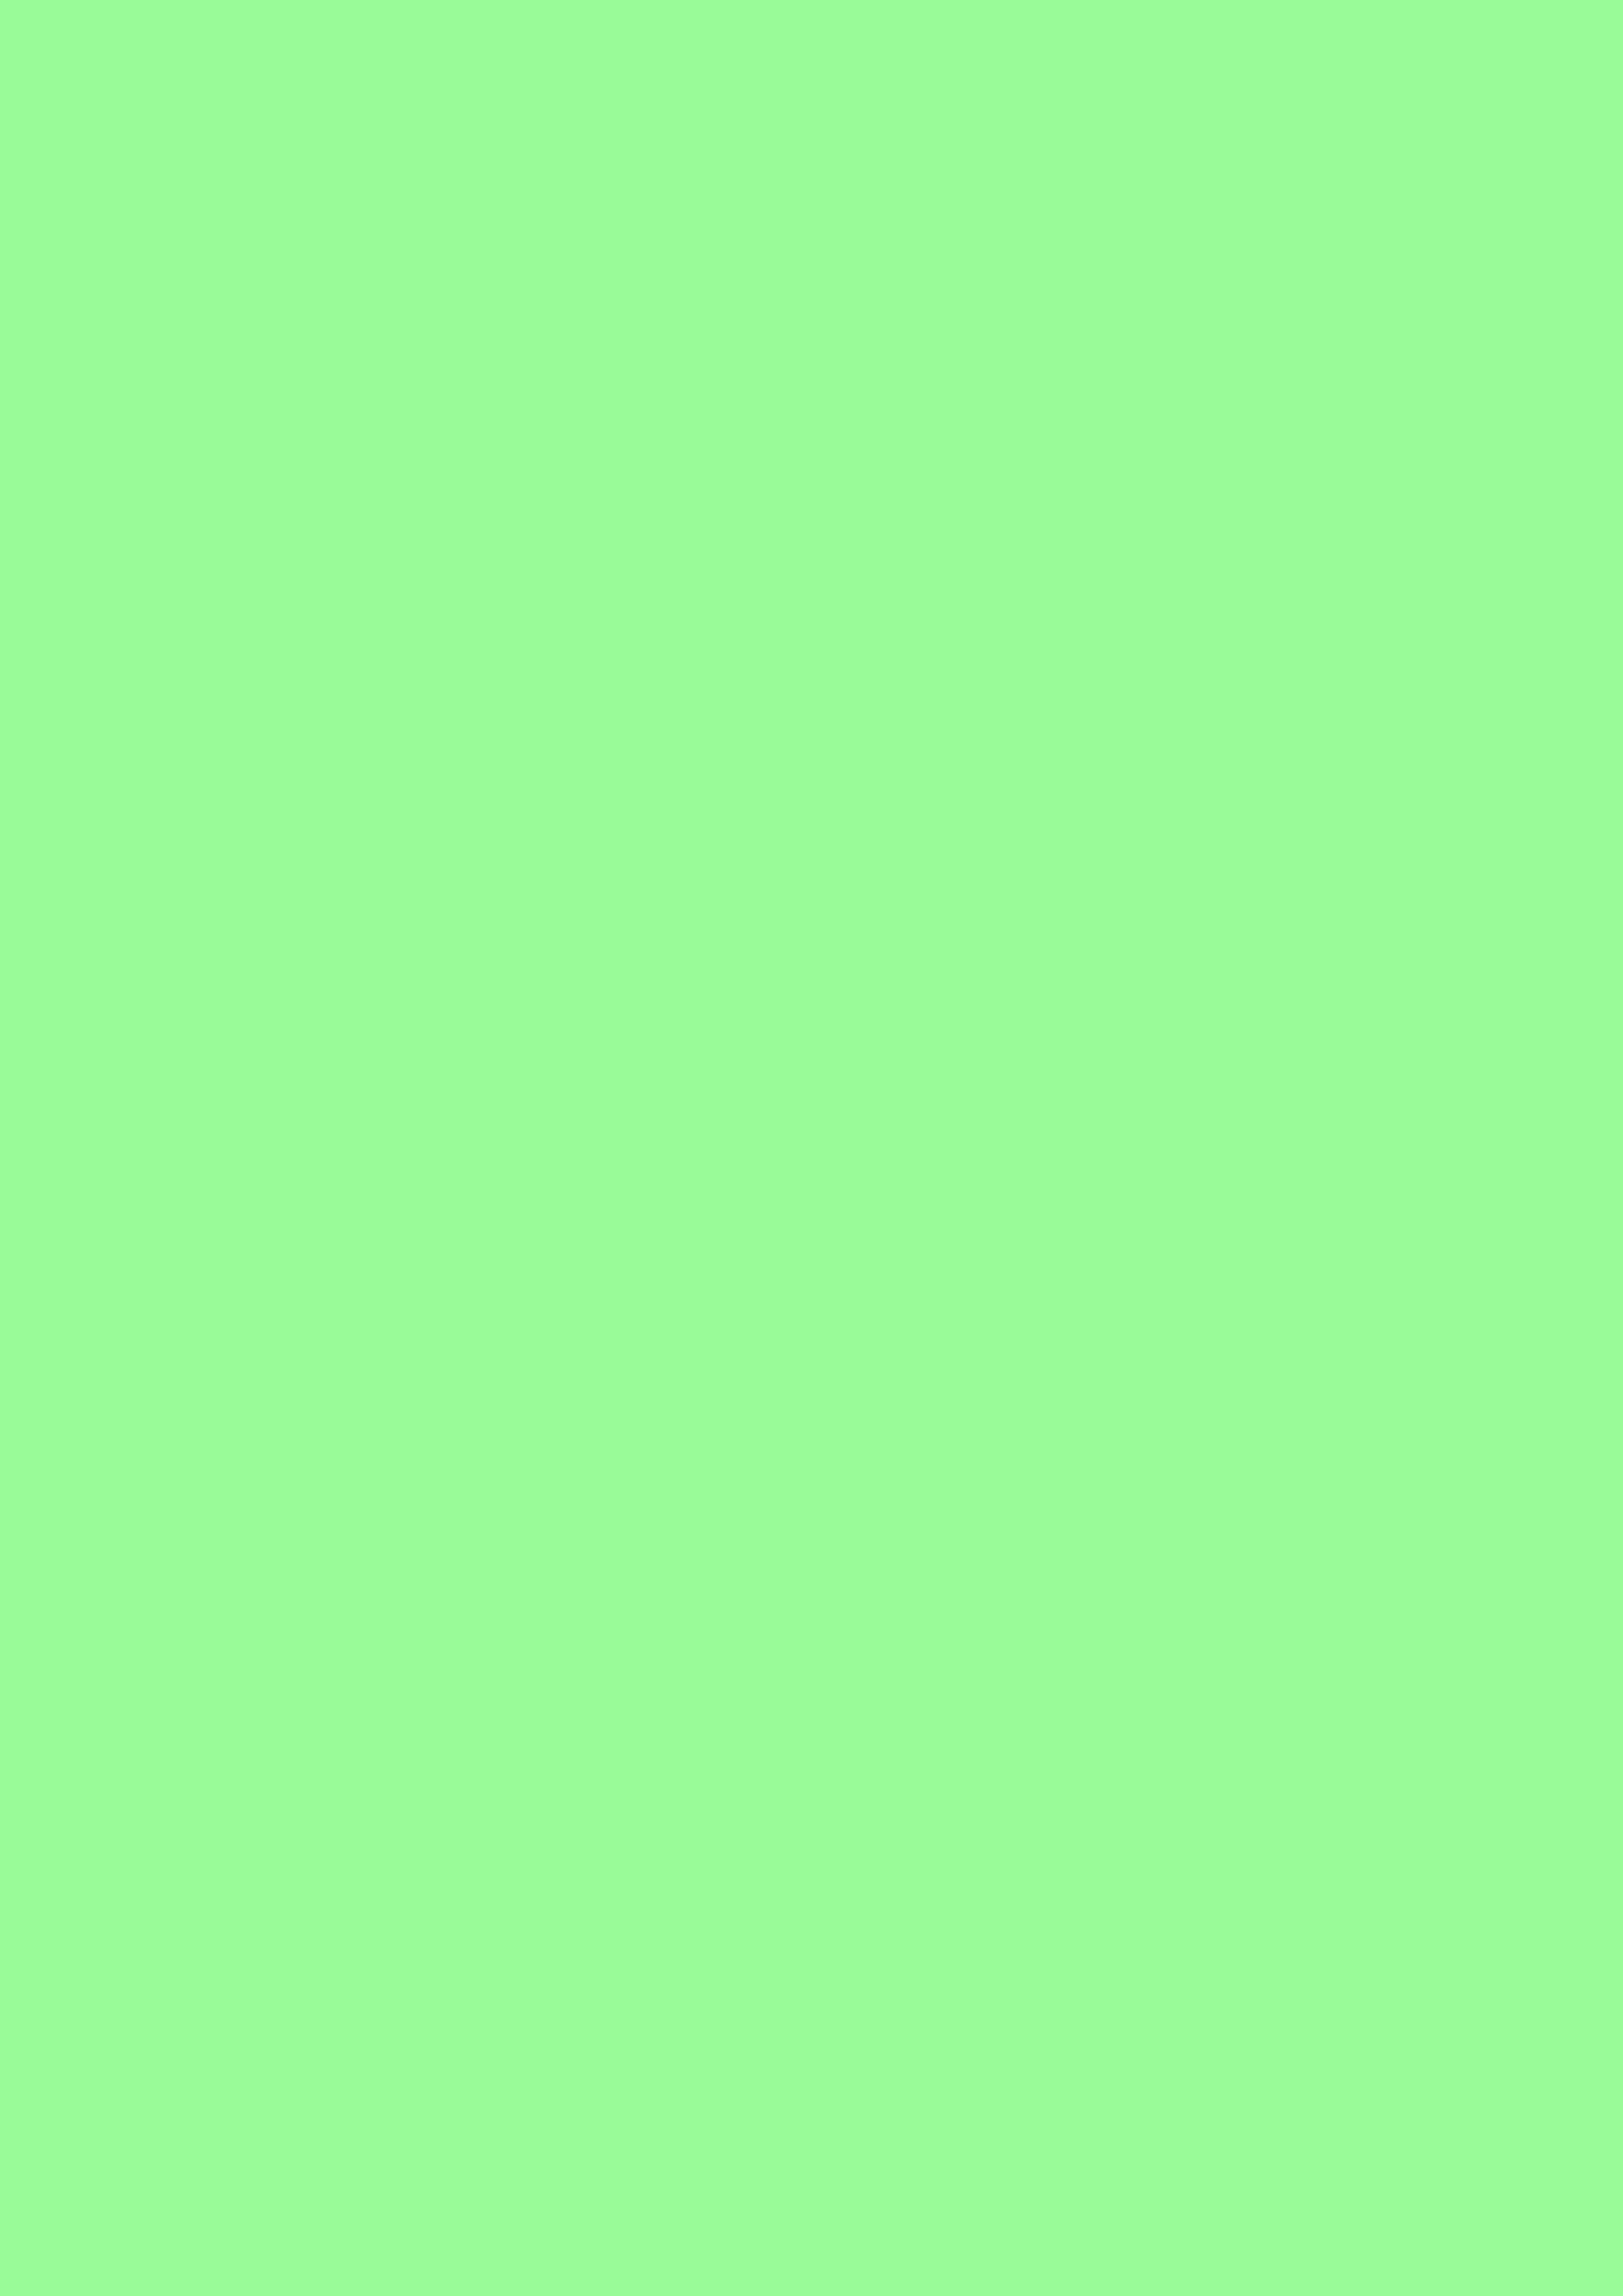 2480x3508 Pale Green Solid Color Background